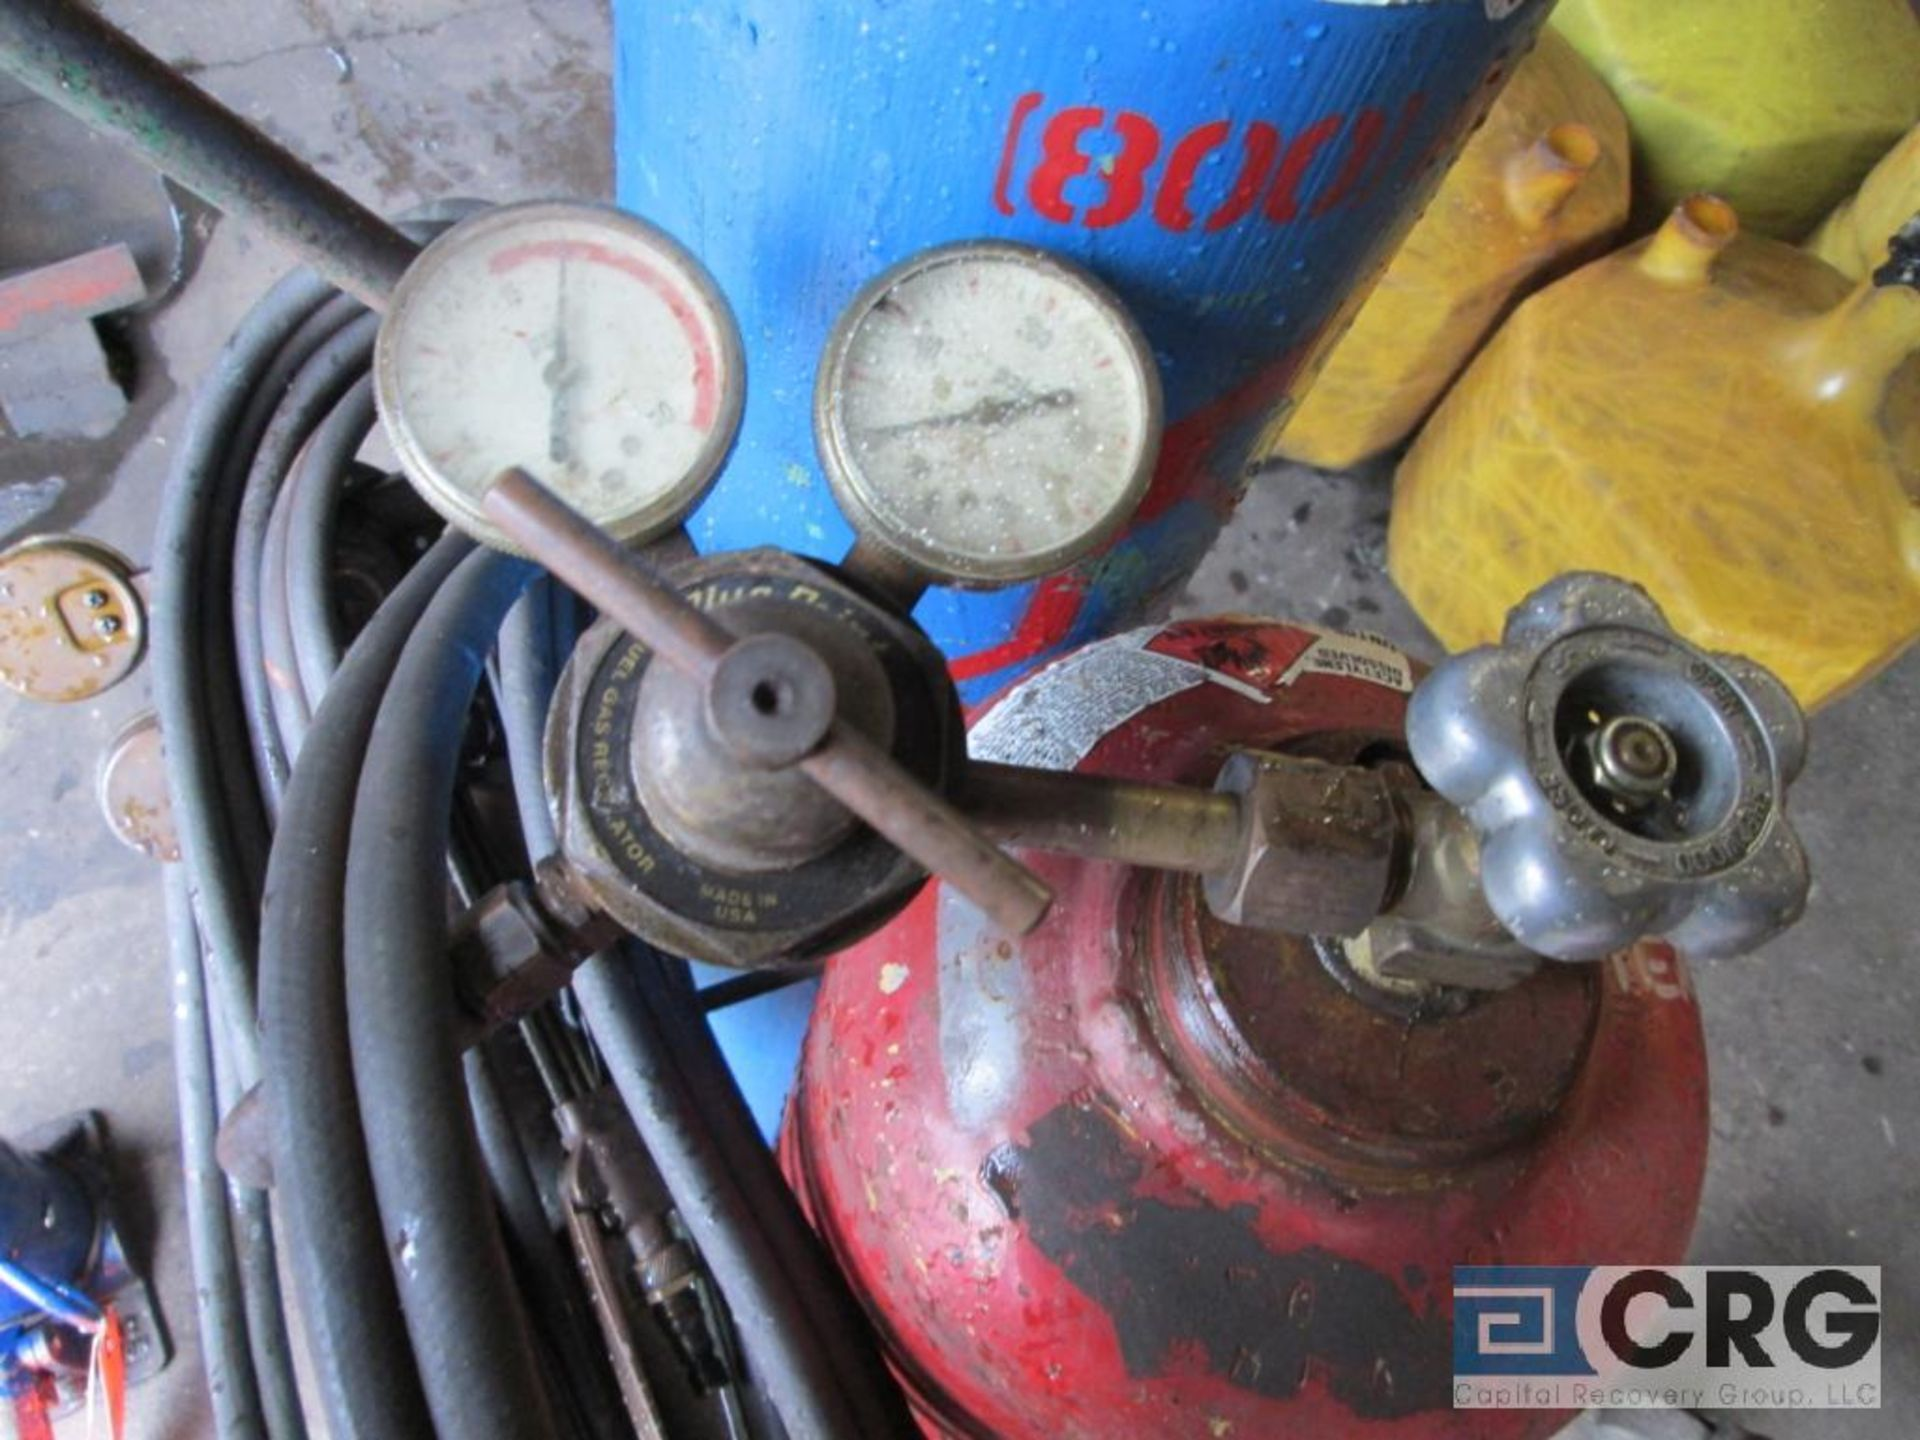 Portable cut and weld unit with tanks, regulators, hose, torches, and cart - Image 3 of 4